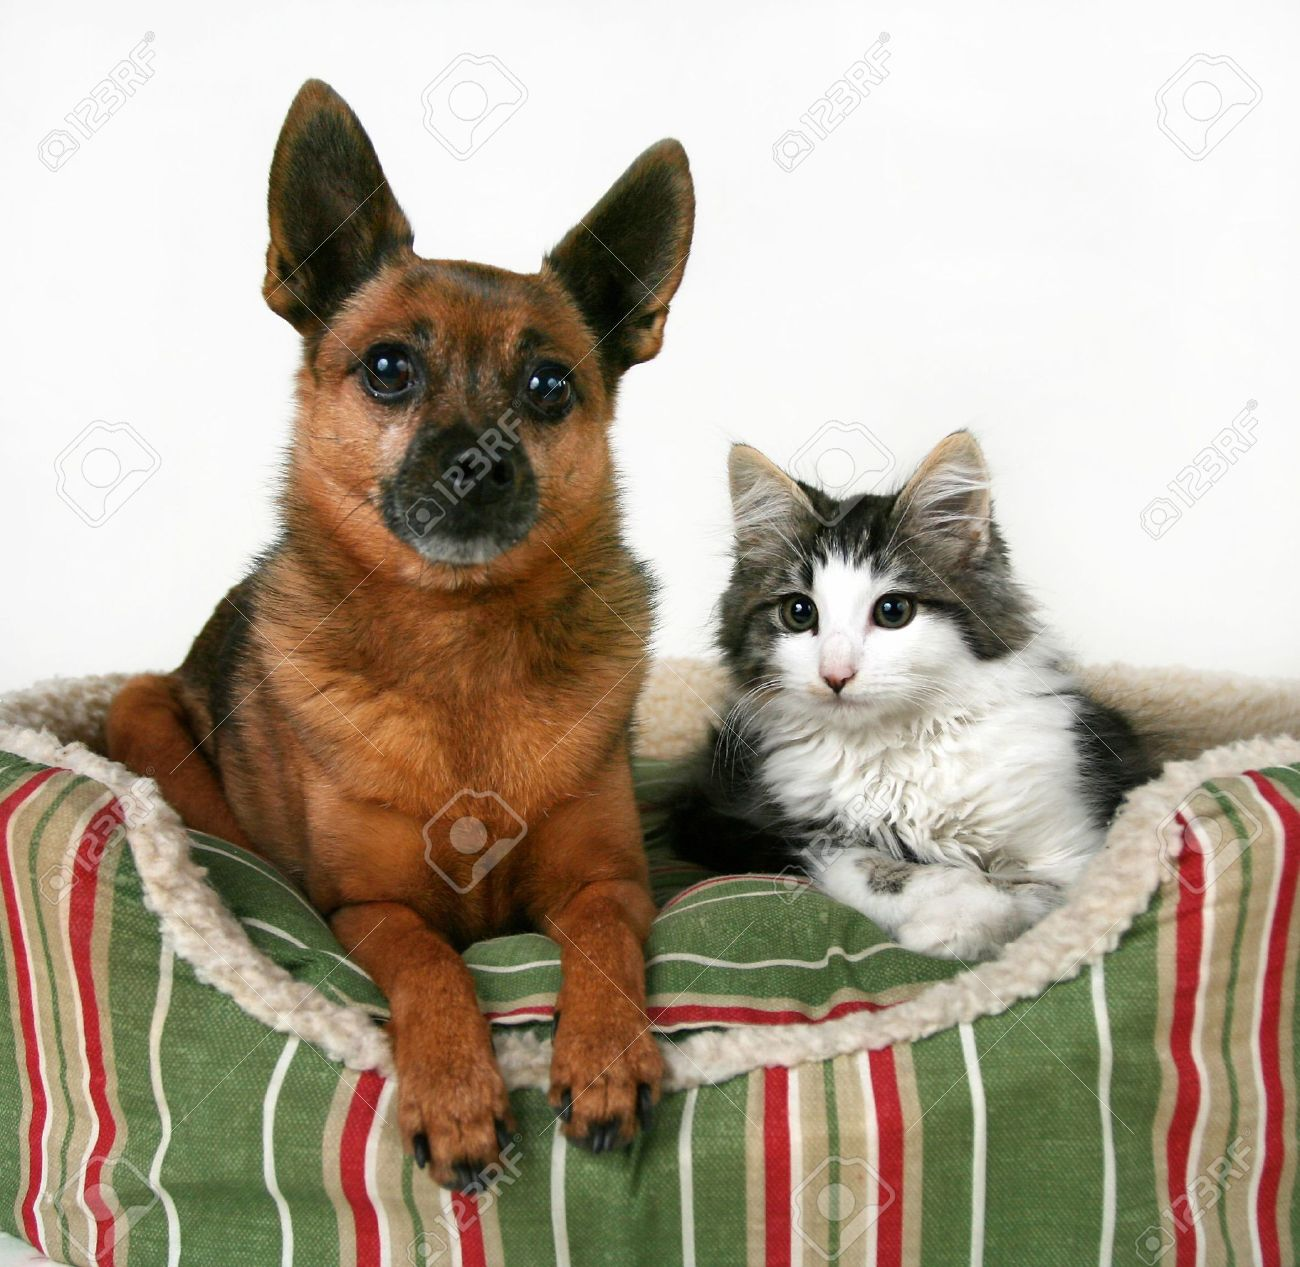 Cat Dog Breed Mix Mix Breed a Dog And a Kitten